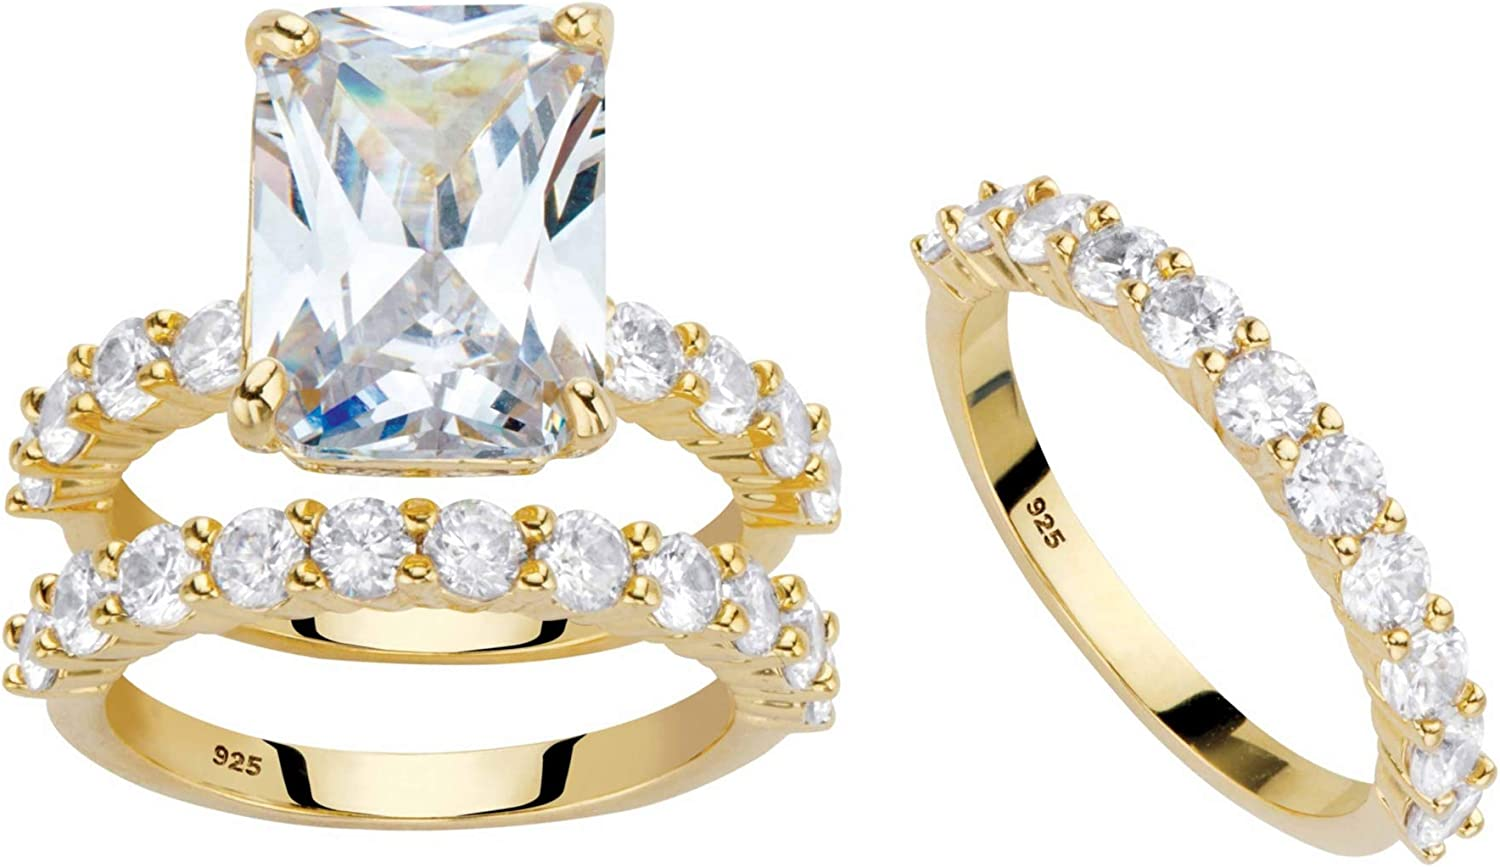 Palm Max 74% OFF Beach Jewelry 14k Gold Over Emerald Zirc Translated Sterling Cut Cubic